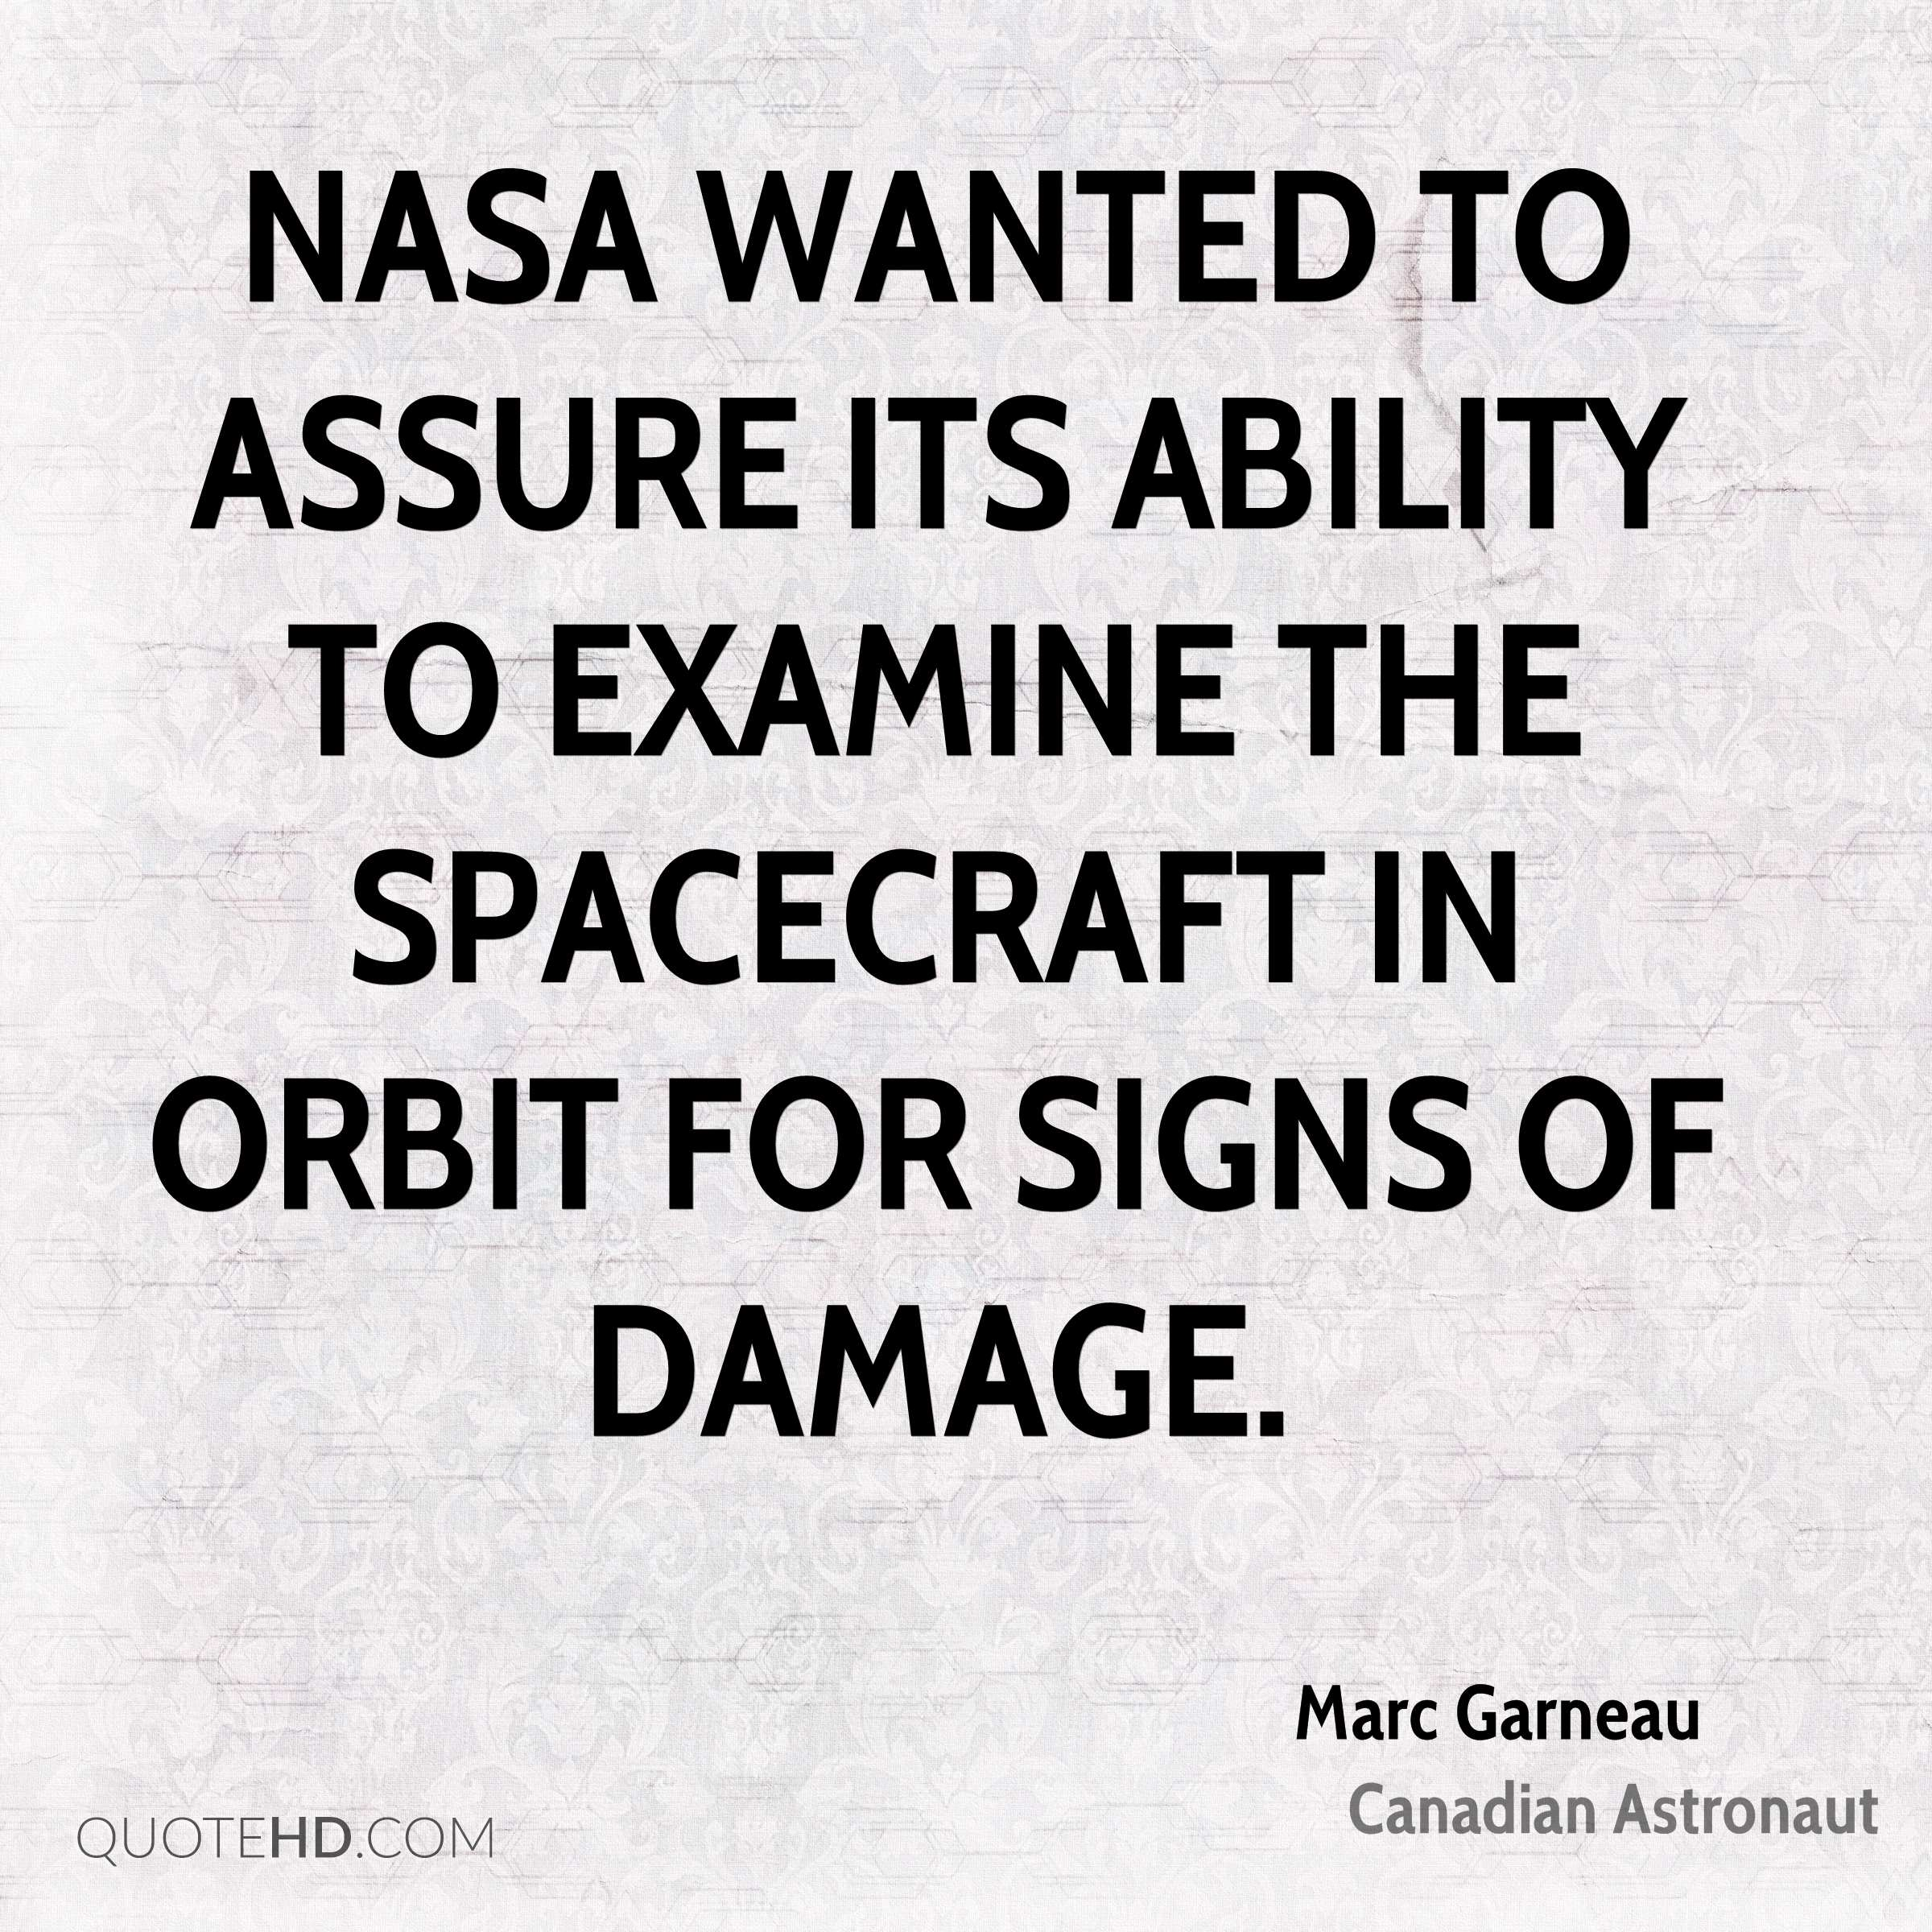 NASA wanted to assure its ability to examine the spacecraft in orbit for signs of damage.